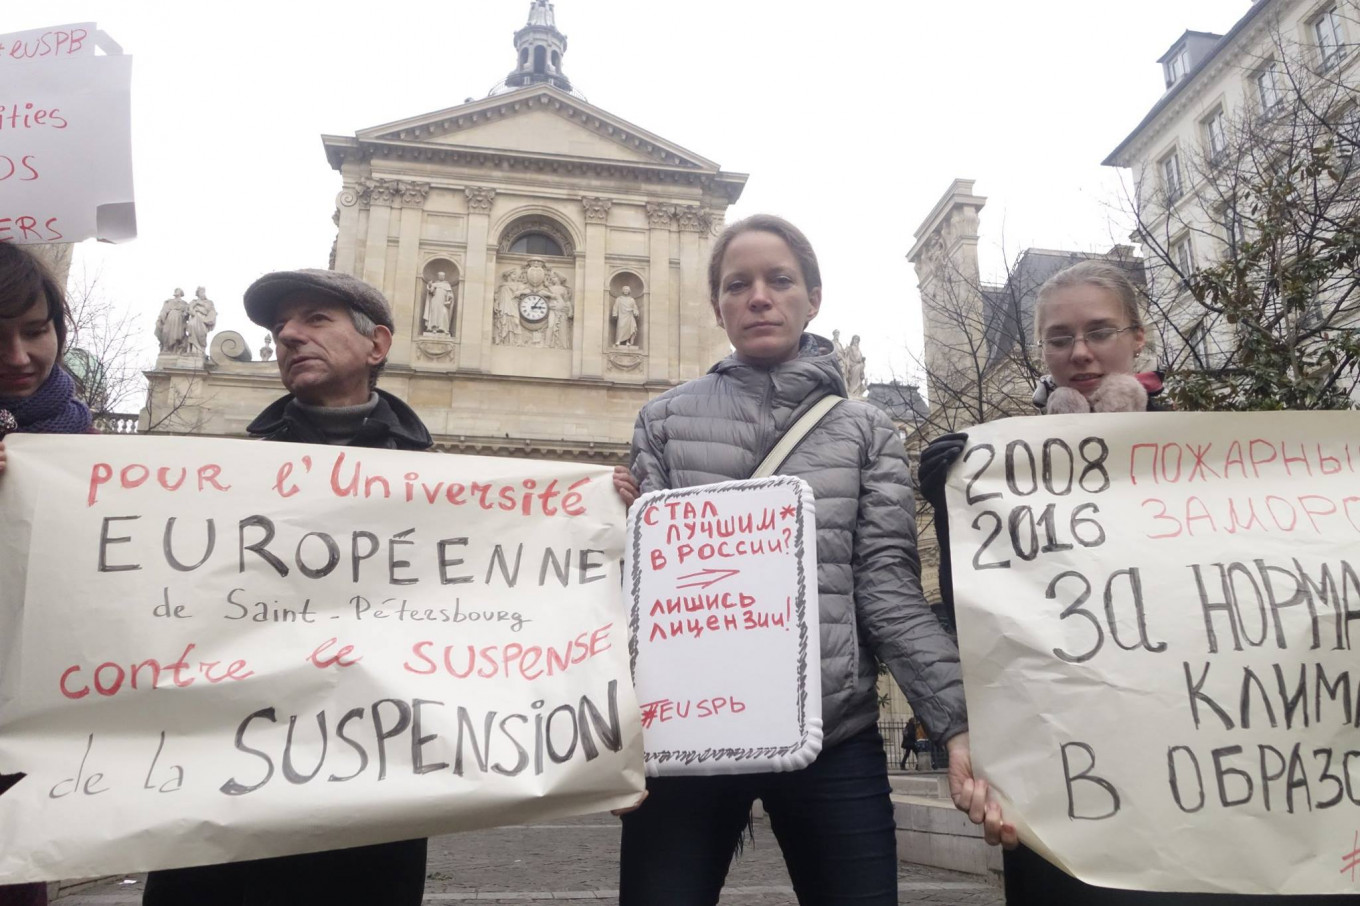 Protesters in Paris demonstrate against the suspension of the university's license. Xenia Lotus / Facebook